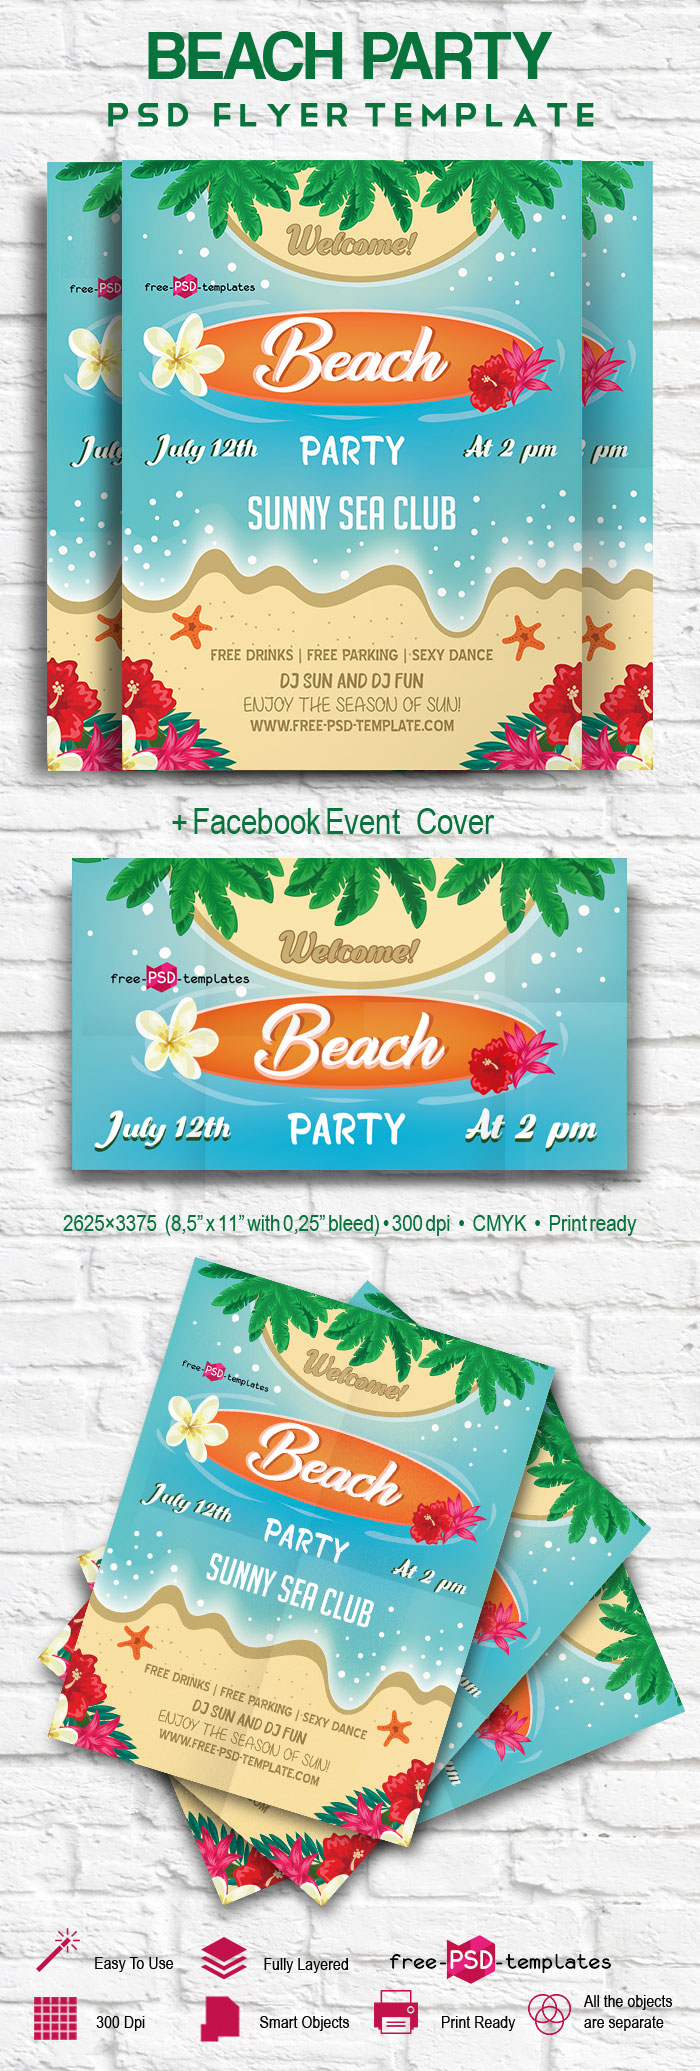 free beach party flyer in psd free psd templates